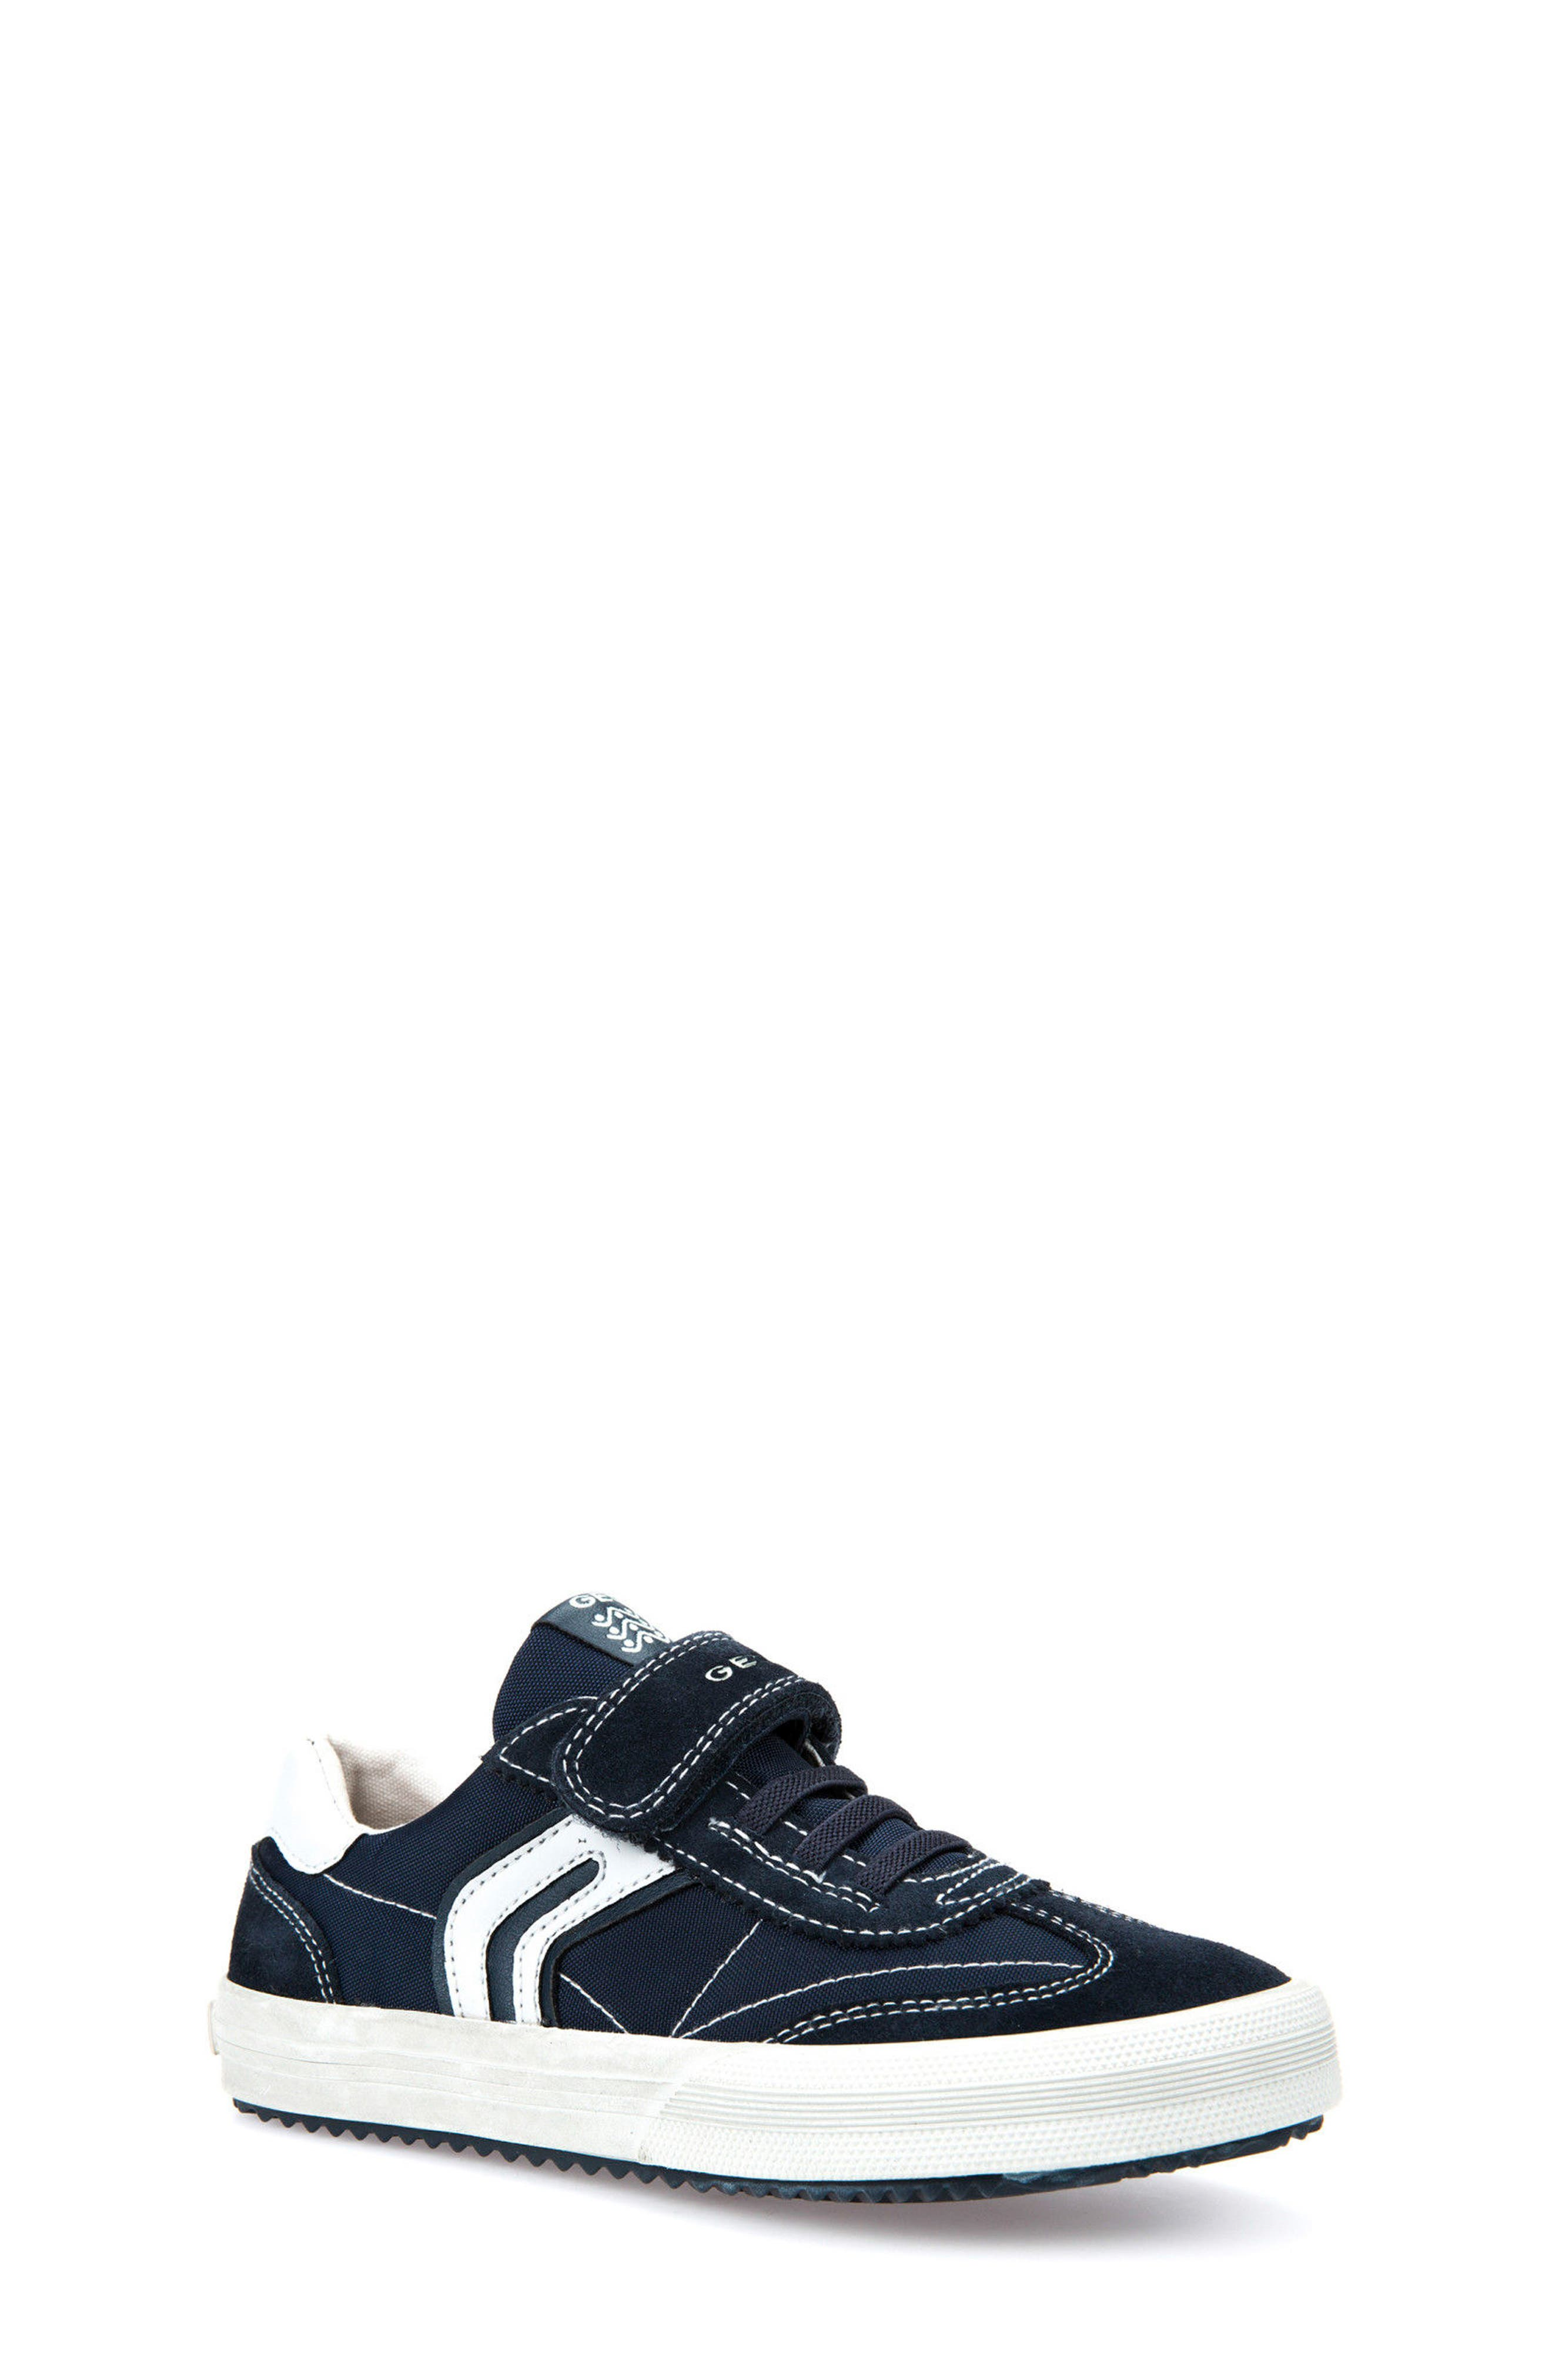 Main Image - Geox Alonisso Low Top Sneaker (Toddler, Little Kid & Big Kid)